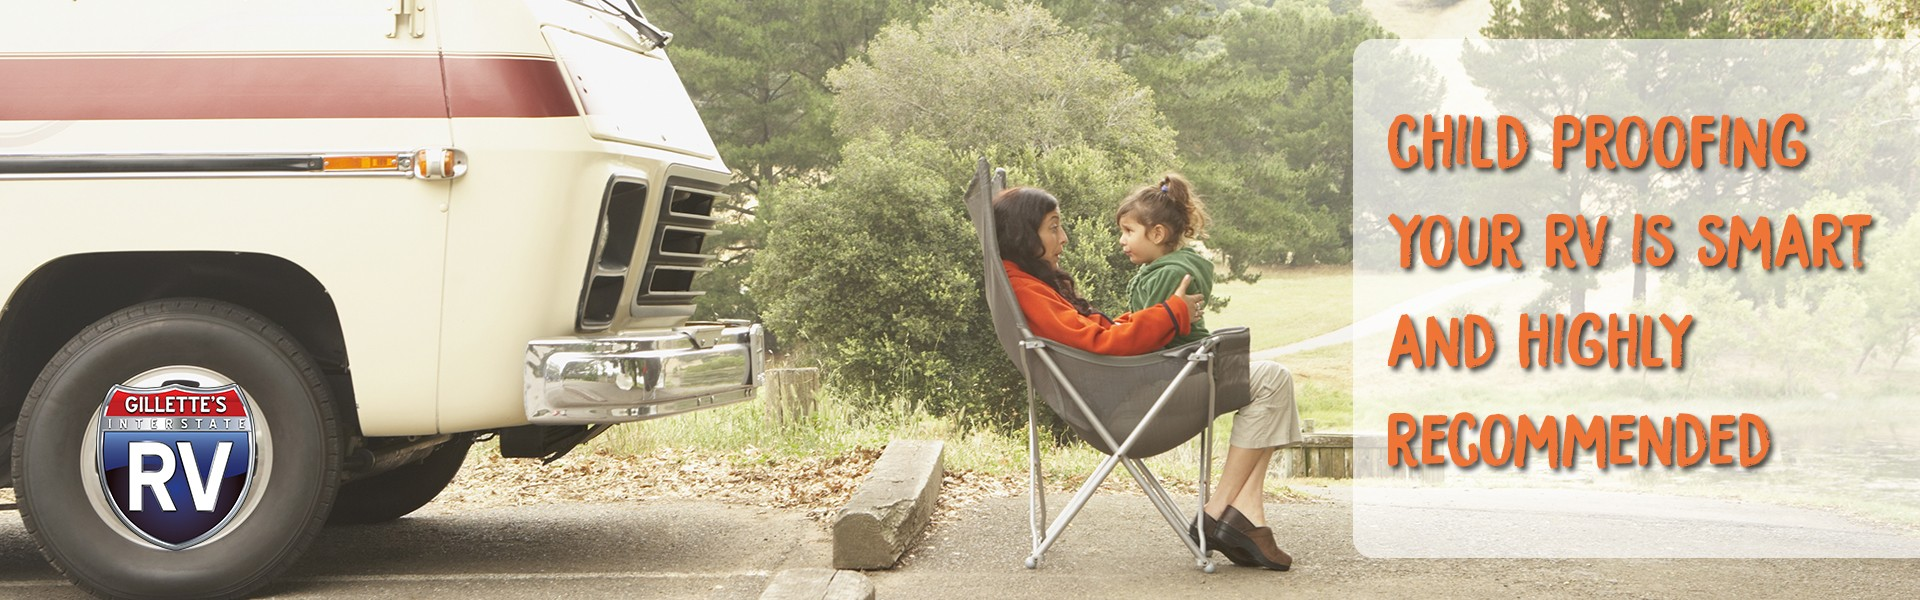 Tips and Tricks For Child-Proofing Your RV  Gillettes